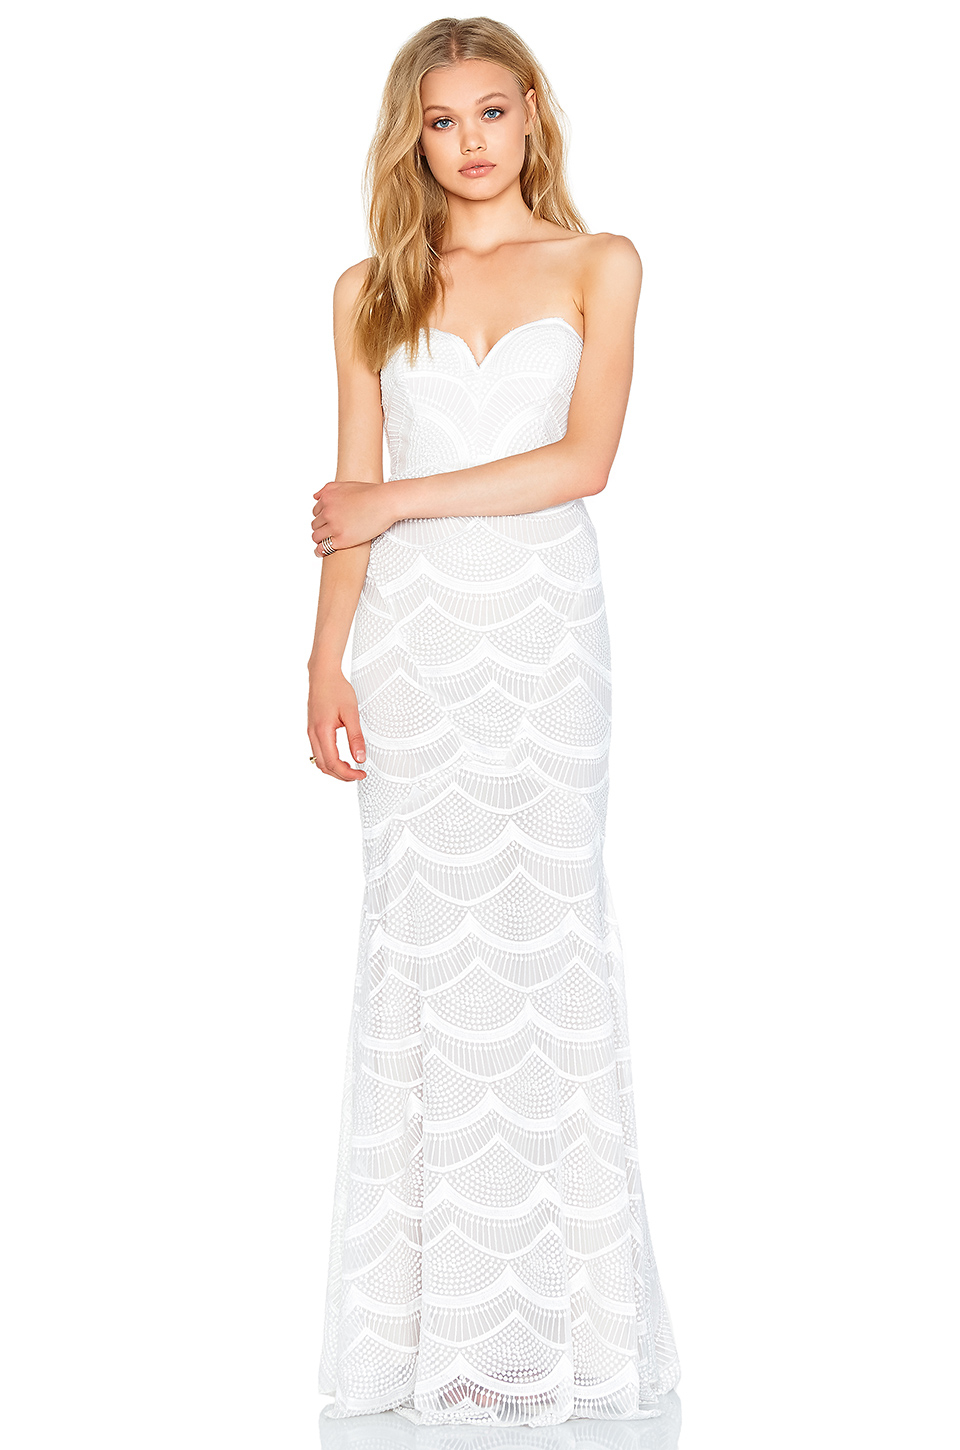 Lyst - Stone Cold Fox Market Gown in White